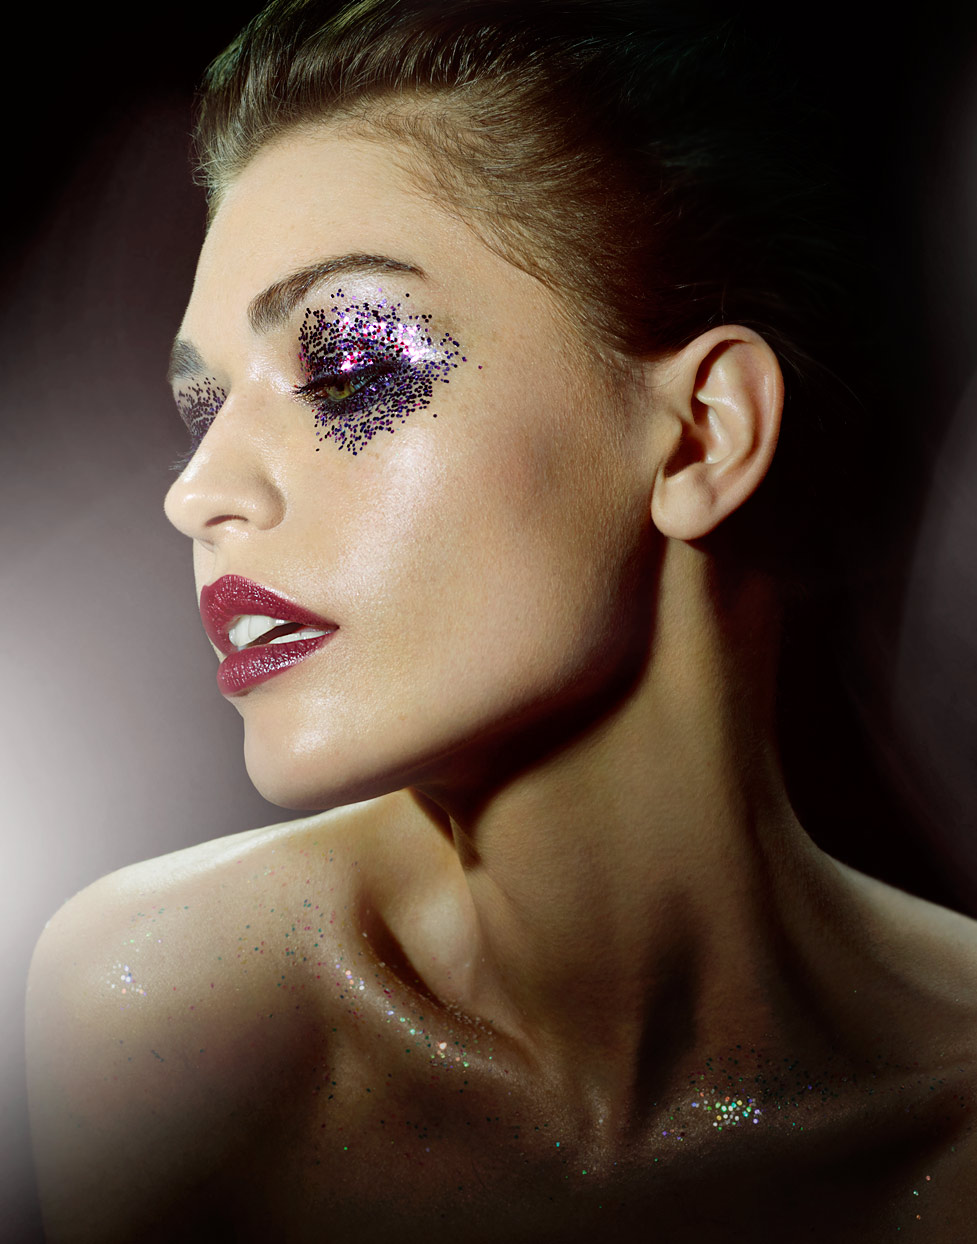 Mark DeLong - Beauty Photographer - Brunette woman with red lipstick and glitter eye shadow